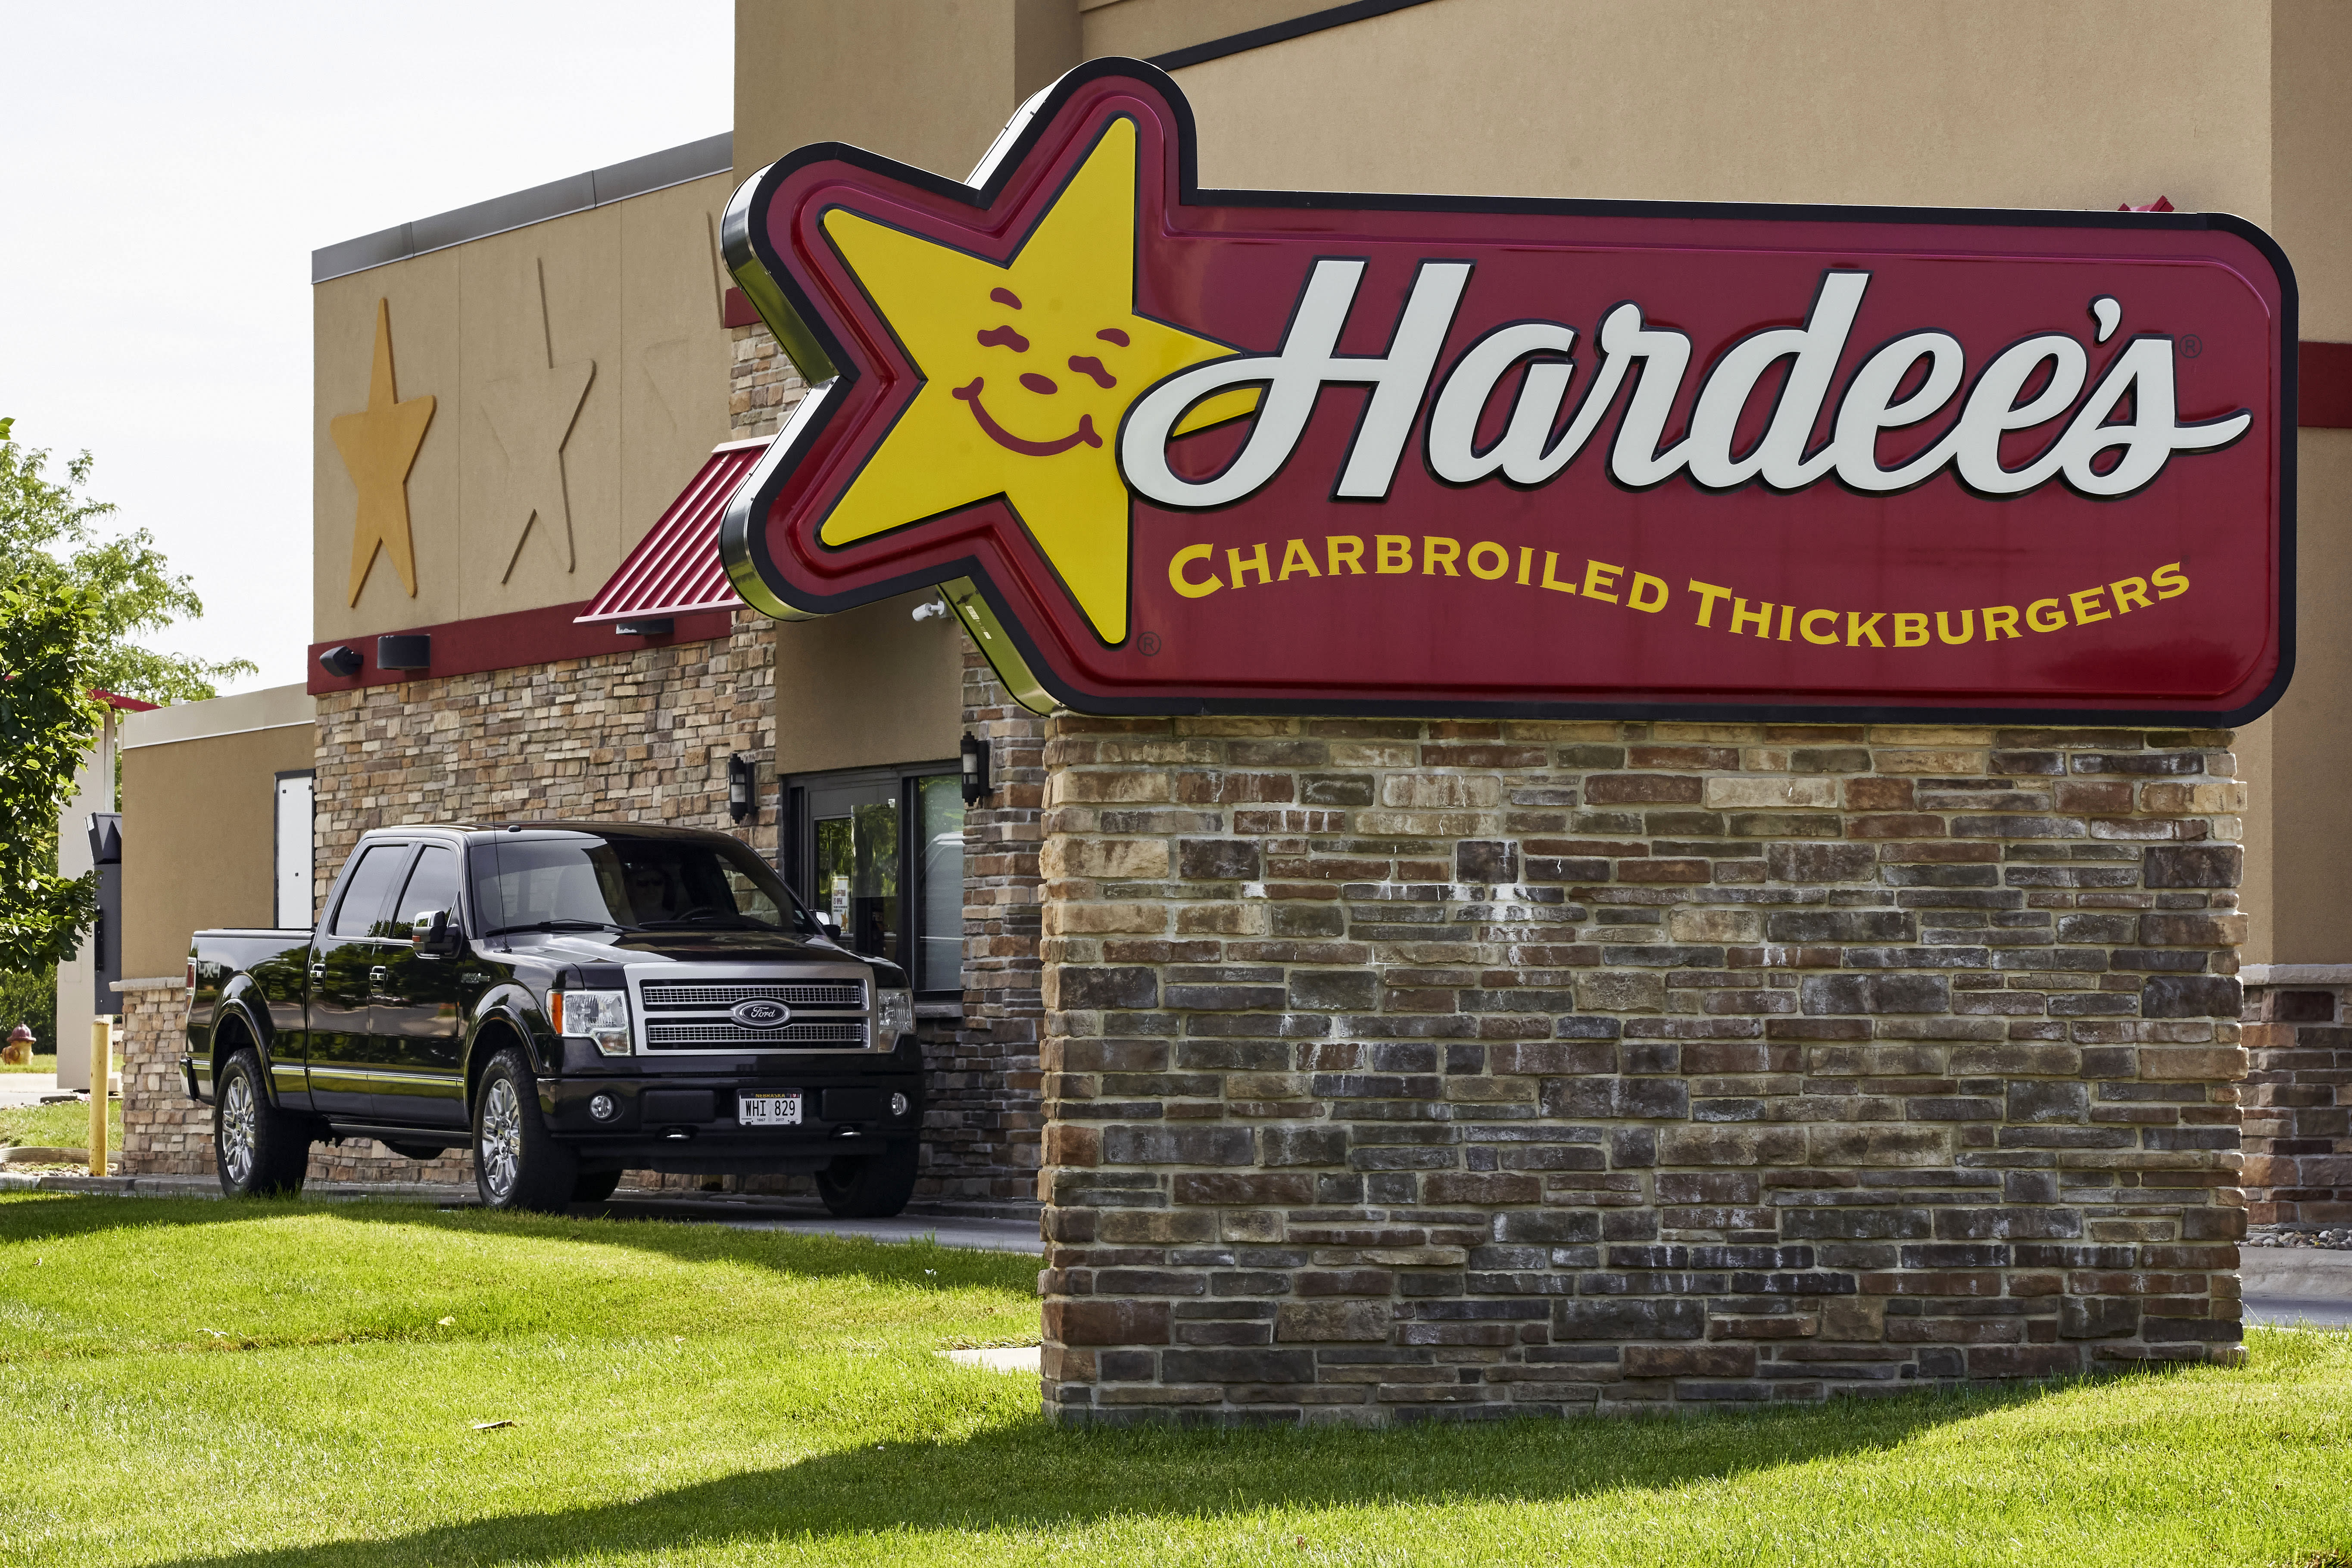 A vehicle approaches the drive-thru window at a Hardee's fast food restaurant in Omaha, Neb., Tuesday, July 7, 2020. Some big corporate names are on the government's list of 650,000 recipients of coronavirus relief loans despite the controversy that prompted other high-profile businesses to return billions of dollars in loan. Among the companies on the list are Boddie-Noell Enterprises, owner of 346 Hardee's restaurants, who received between $5 million and $10 million. (AP Photo/Nati Harnik)